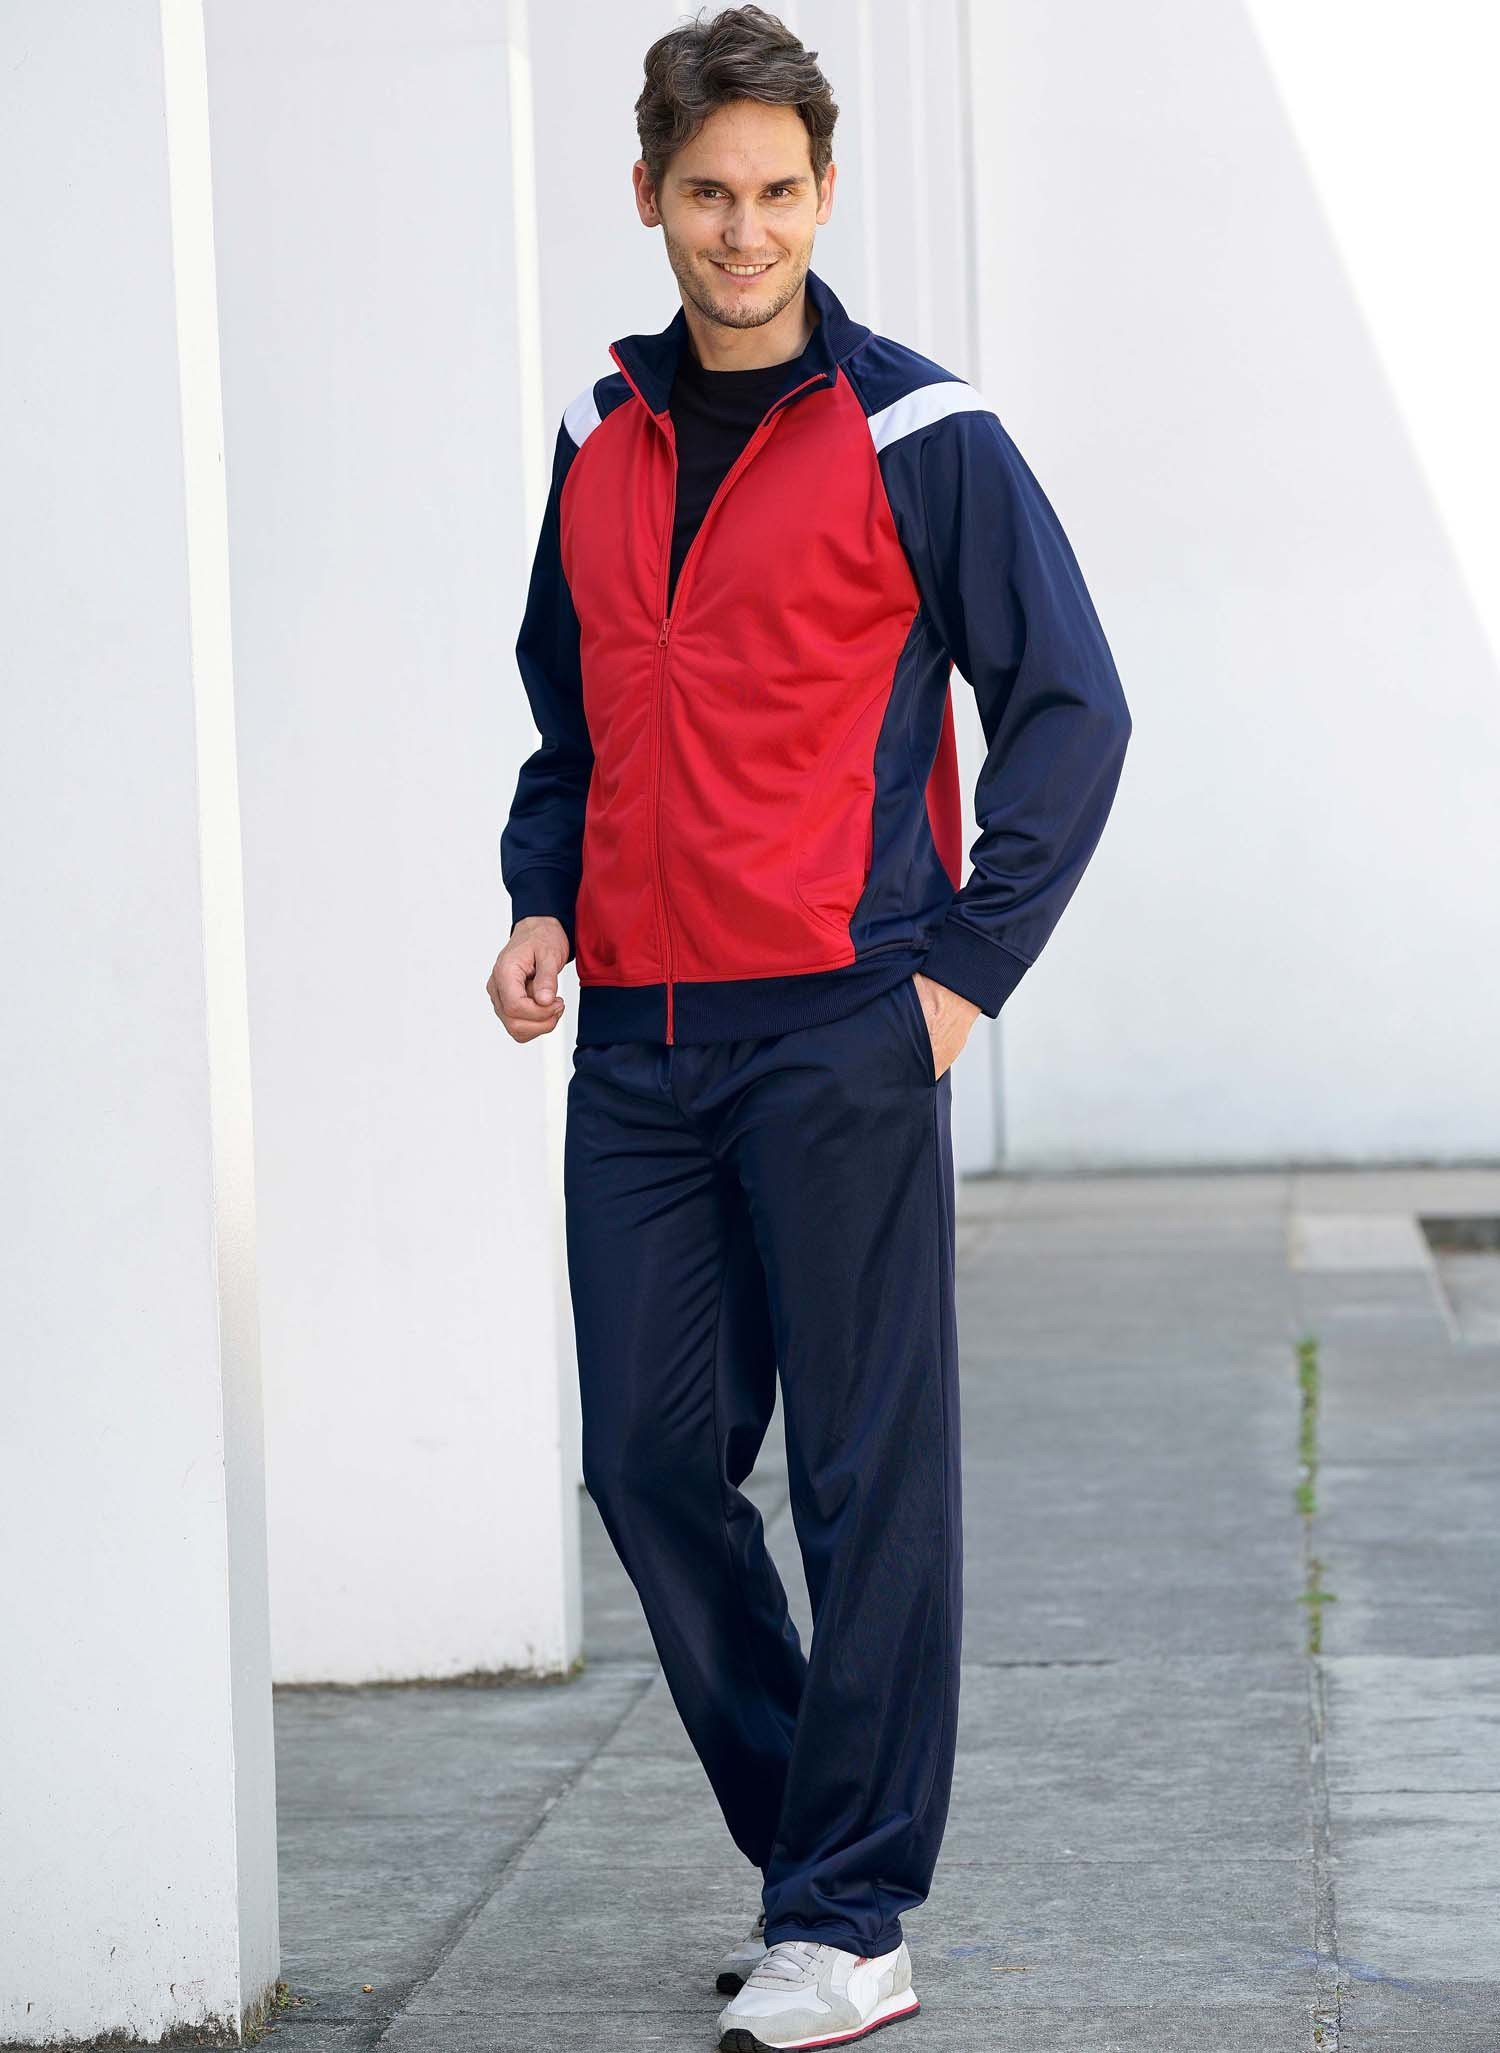 H-Completo-Jogging marine/ross